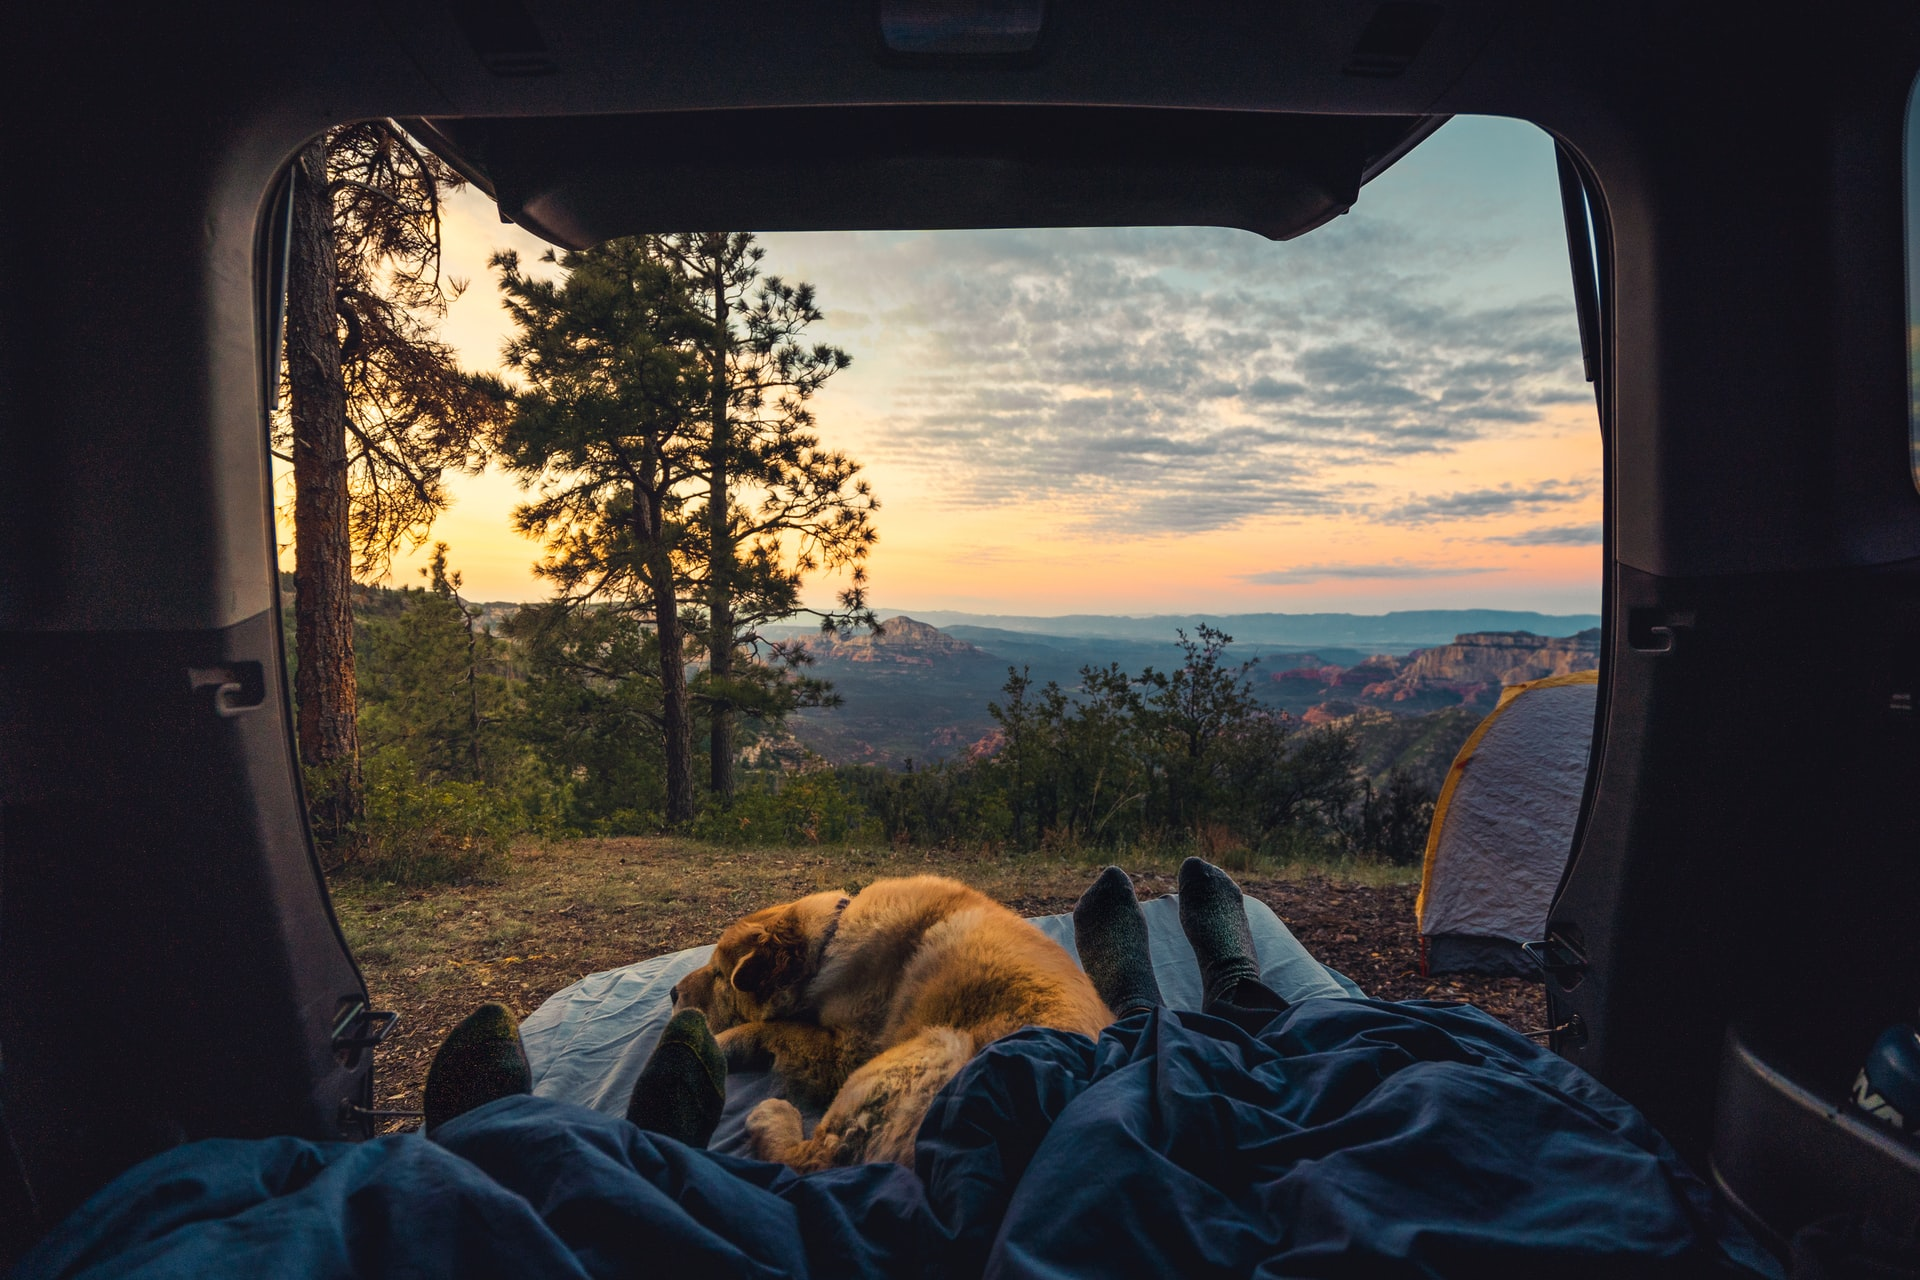 Dog Accessories for RV Camping